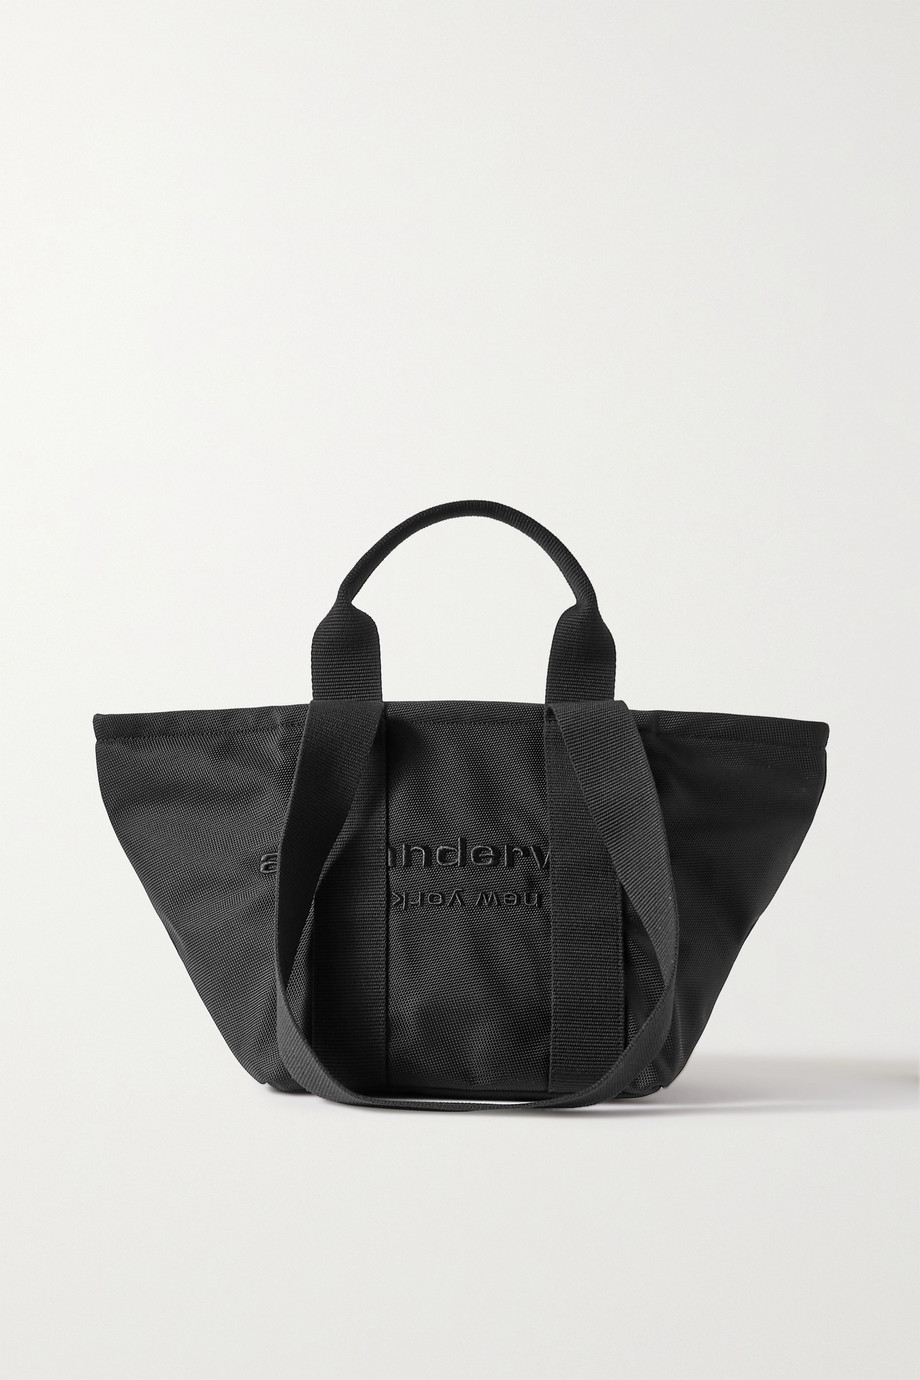 Alexander Wang Primal medium embroidered nylon tote